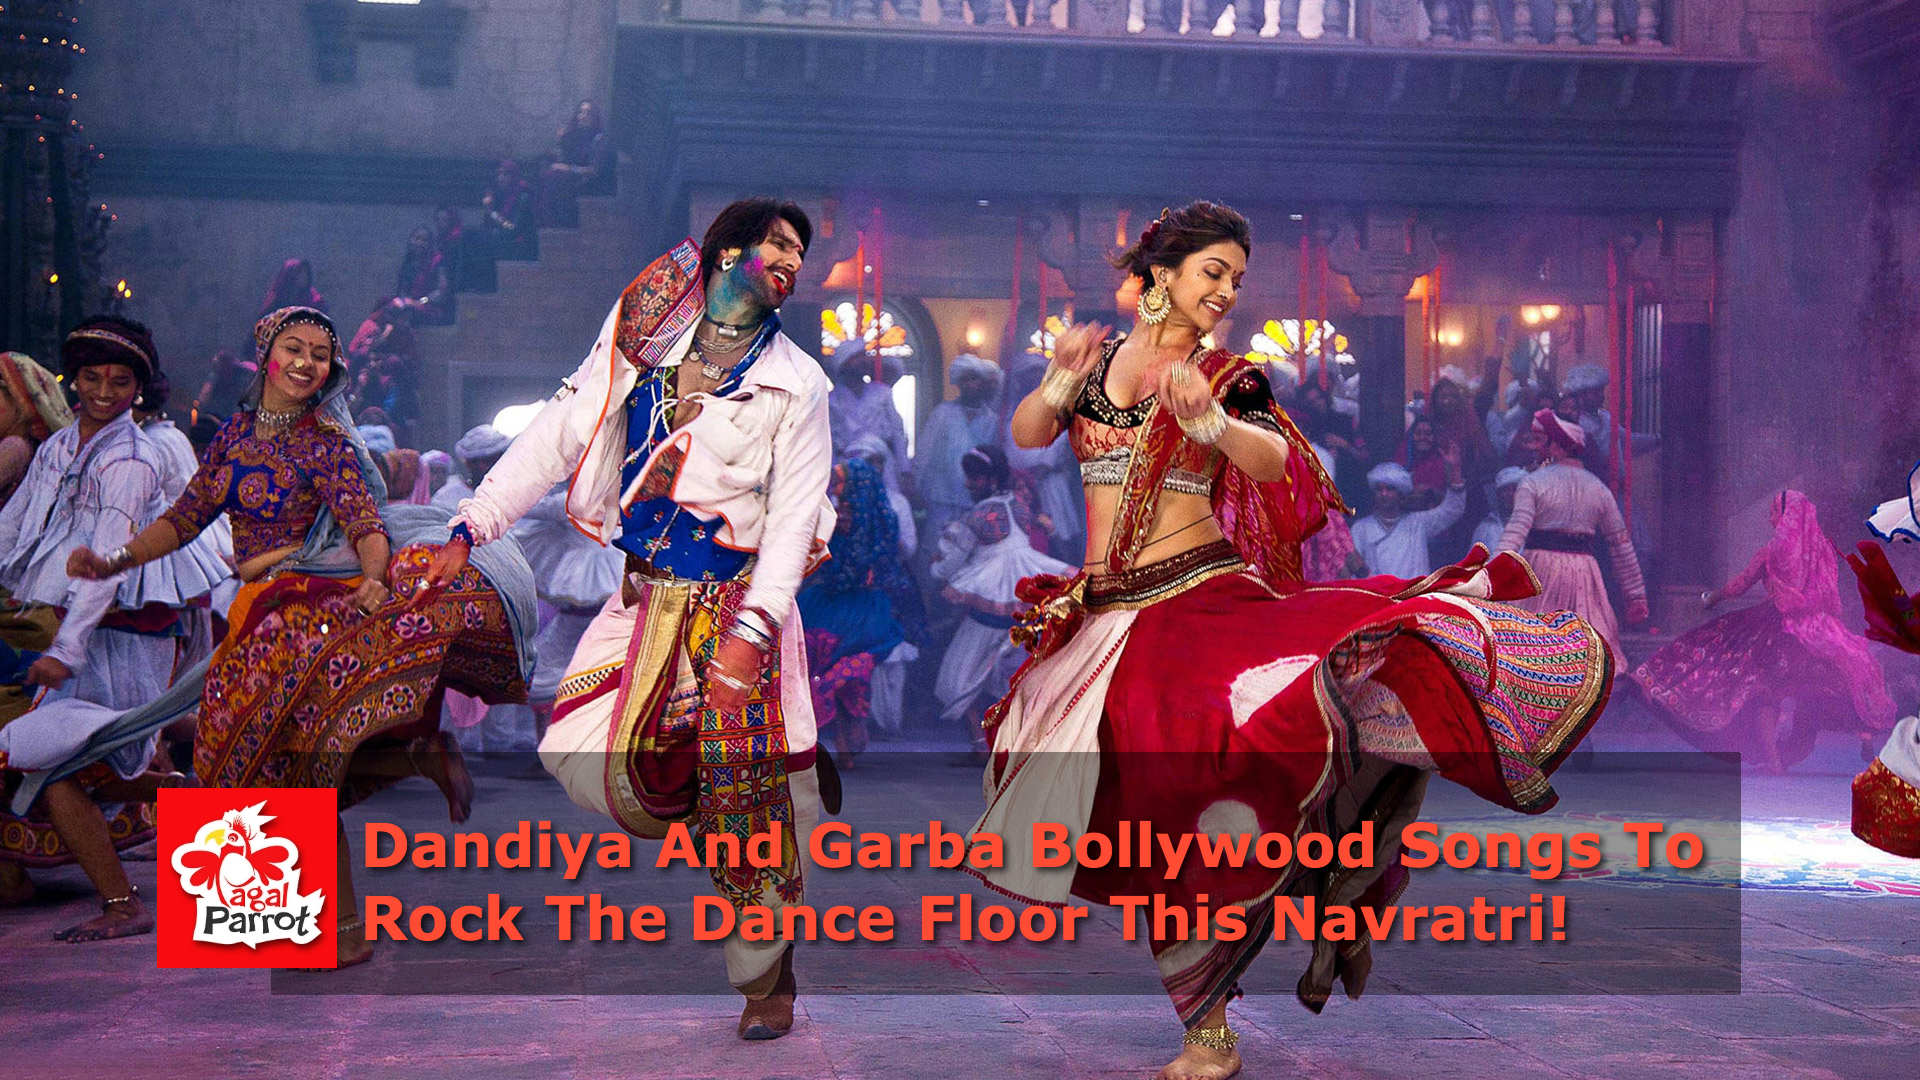 Dandiya And Garba Bollywood Songs To Rock The Dance Floor This Navratri!